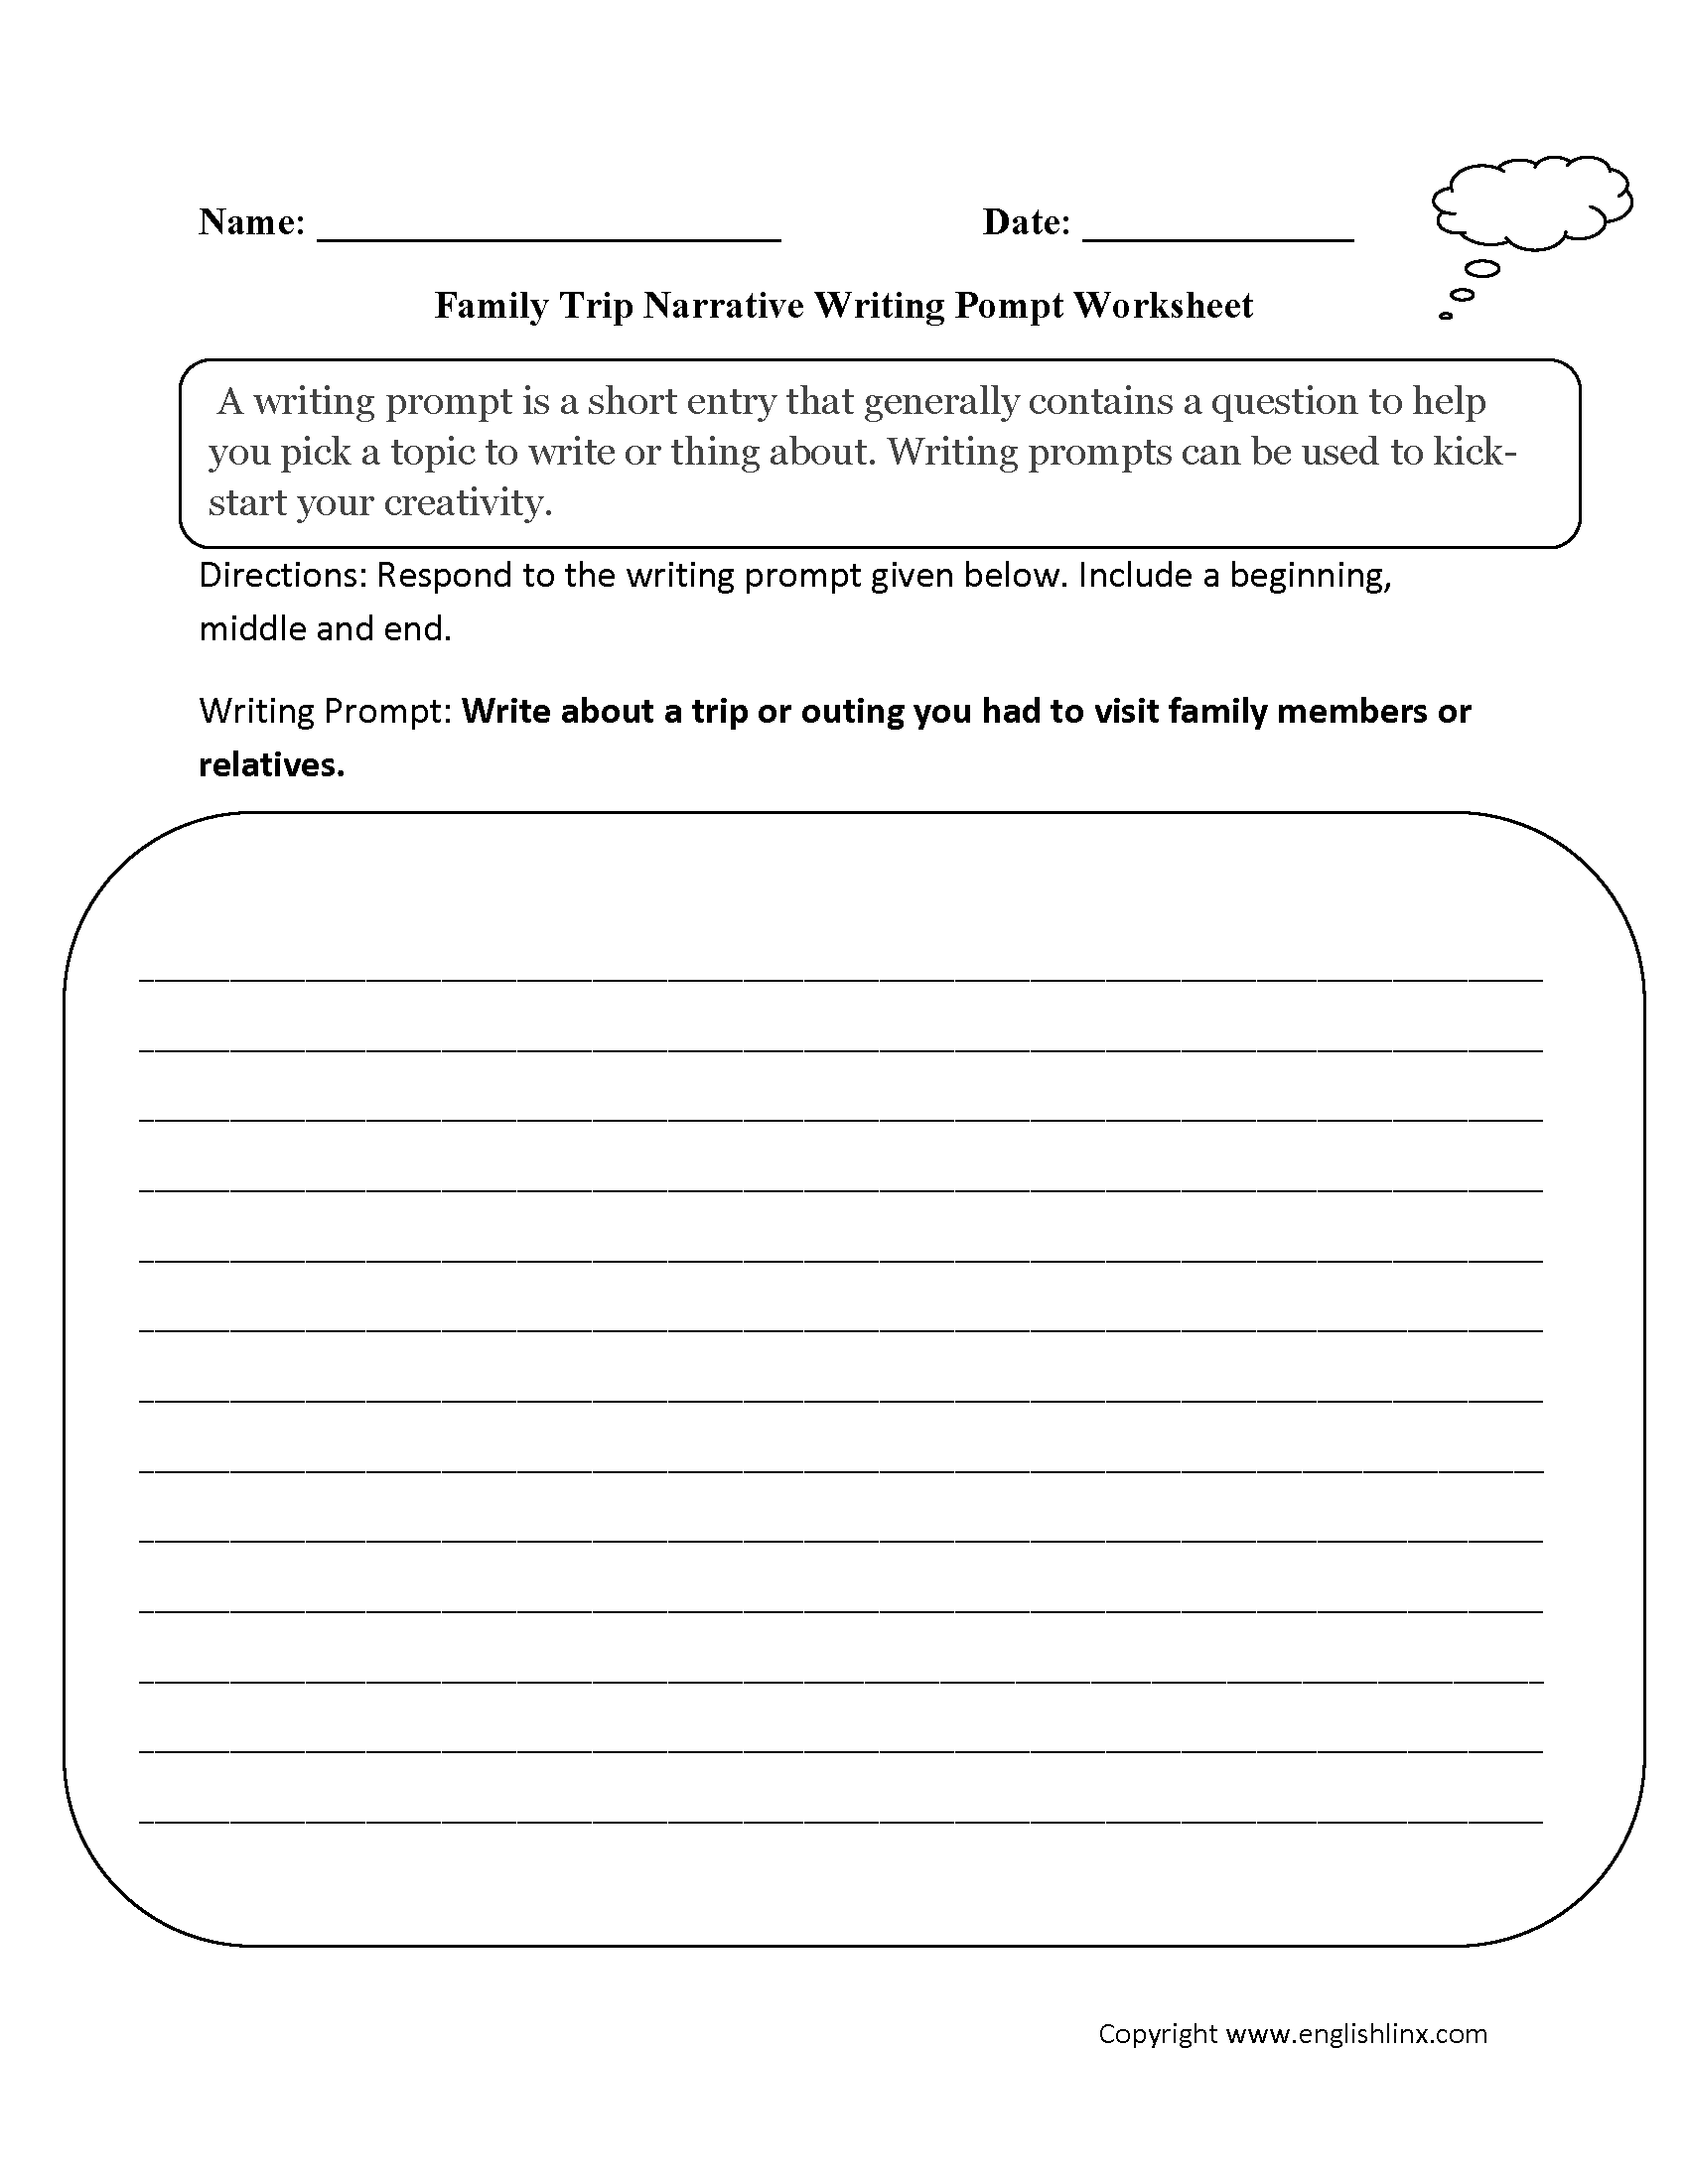 Worksheets Writing Worksheets For 6th Grade writing prompts worksheets narrative prompt worksheet